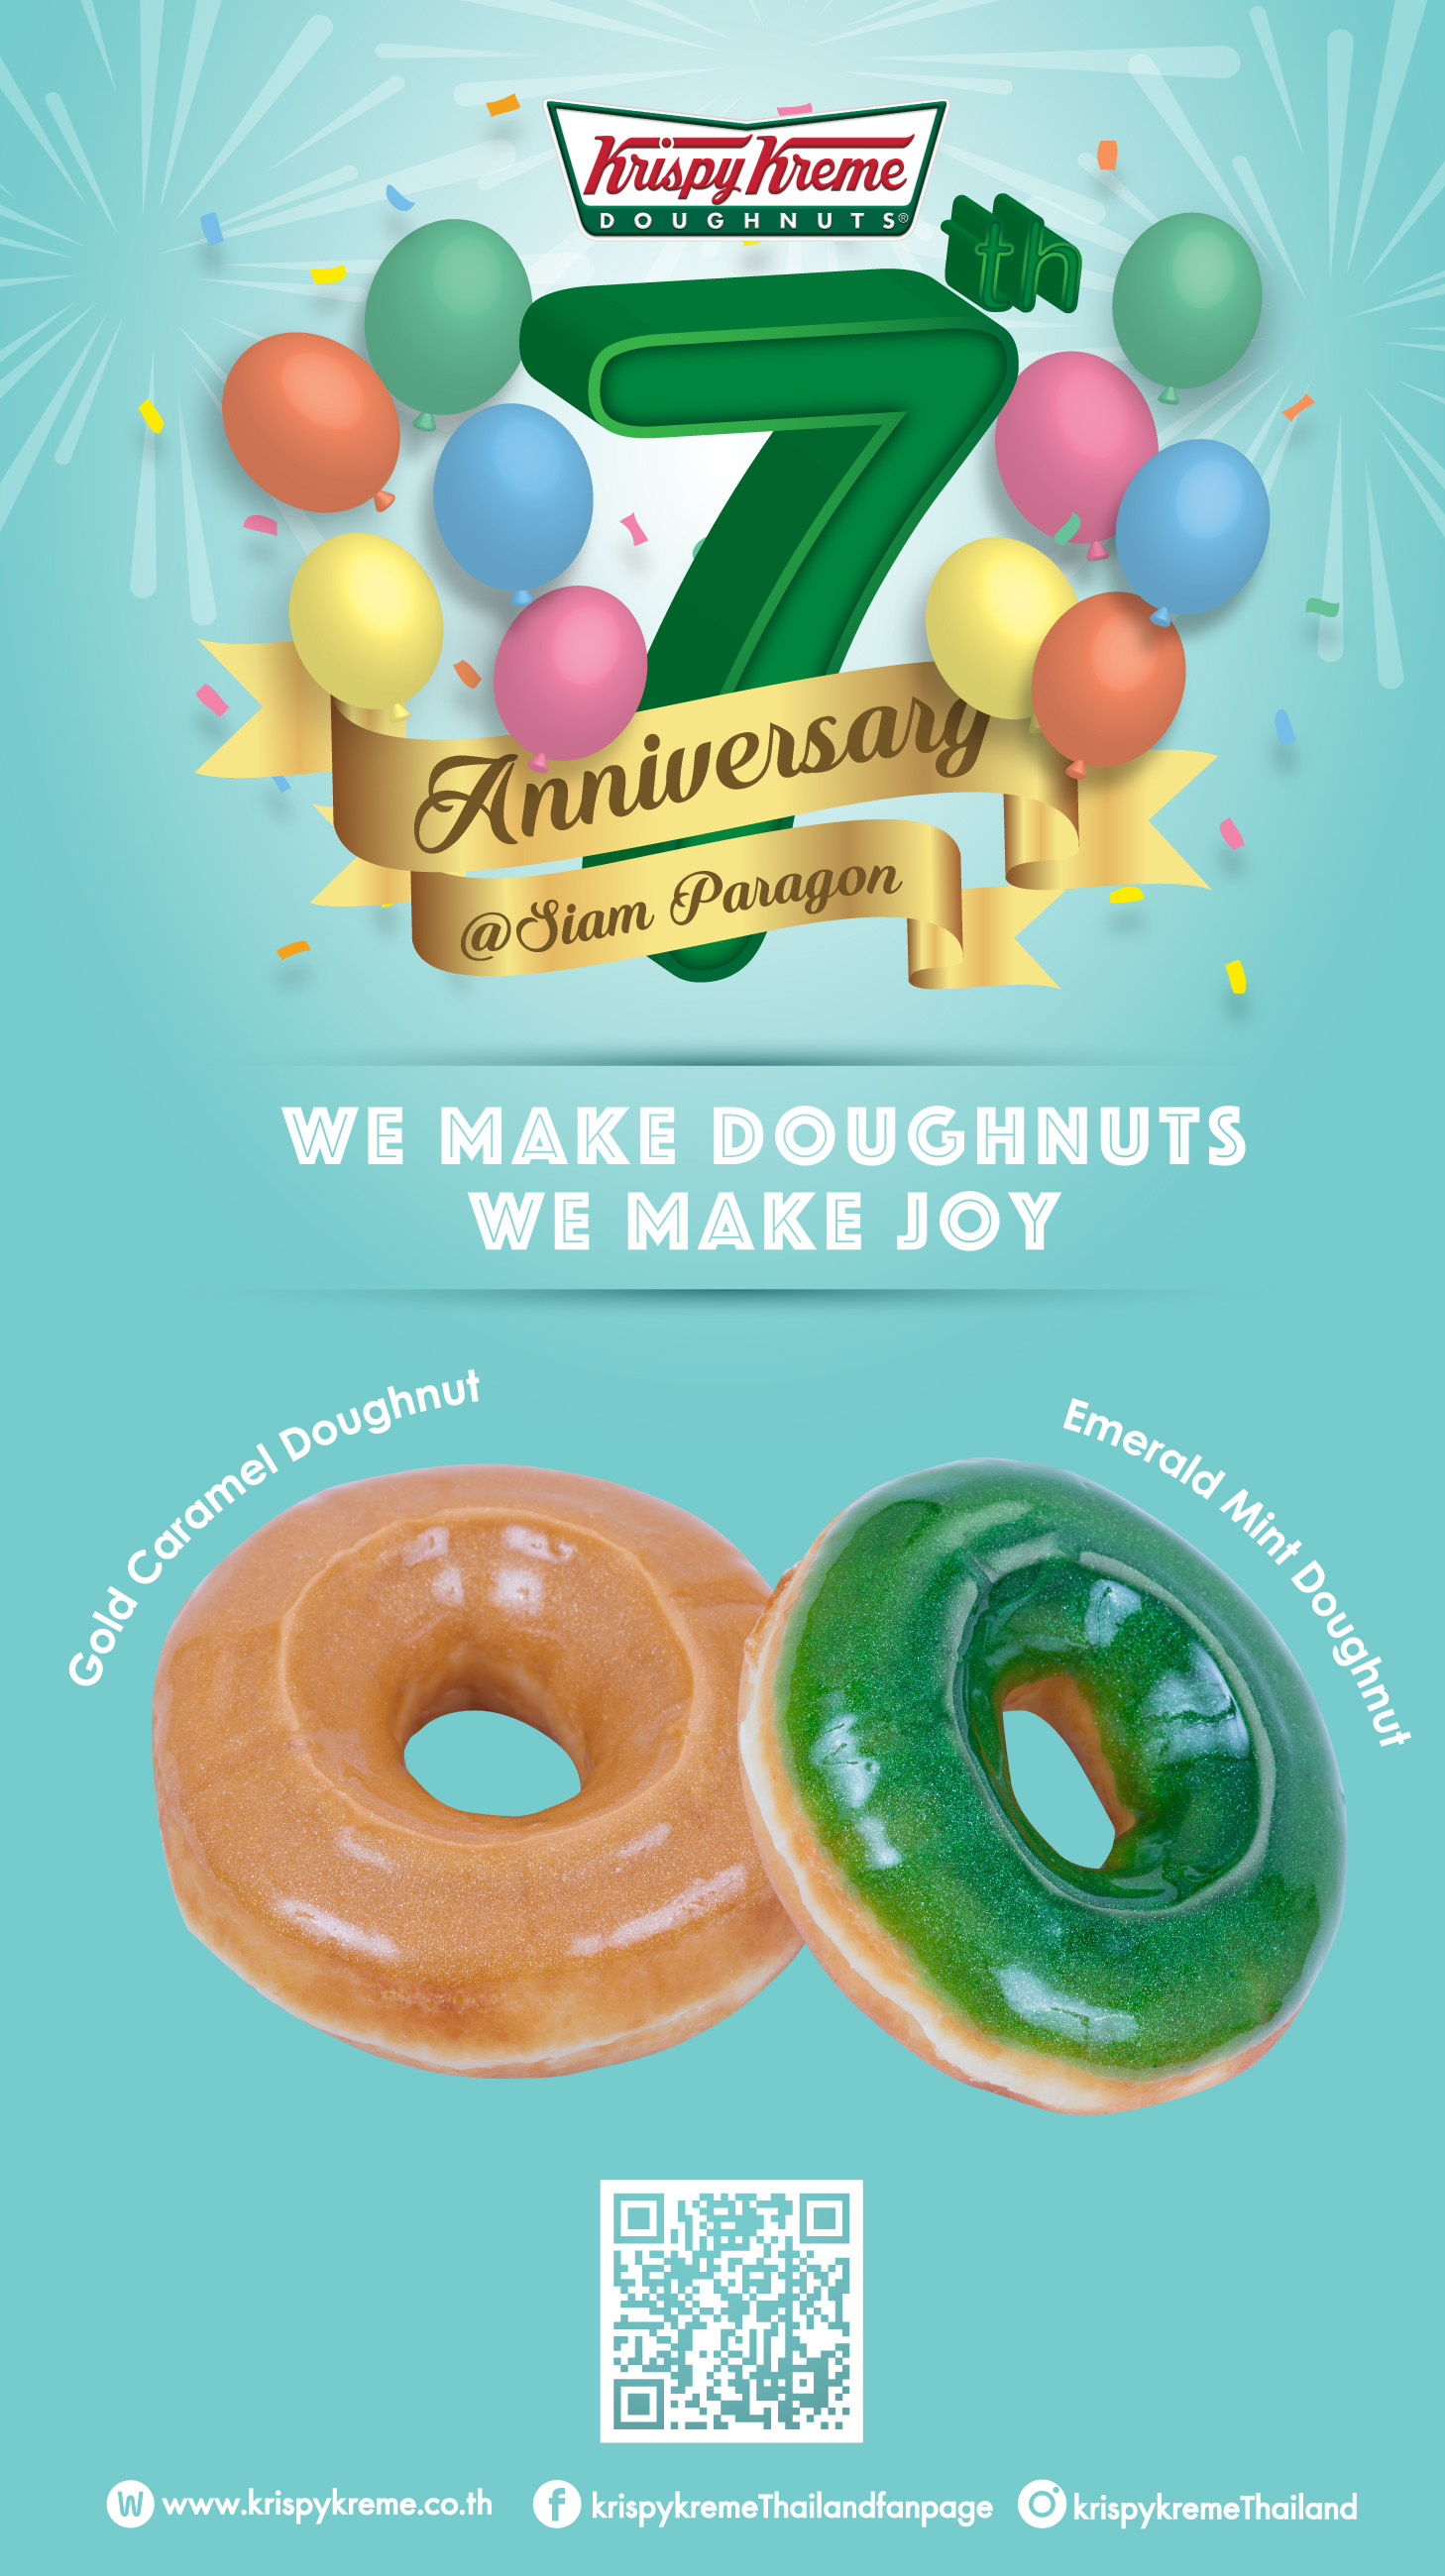 krispykreme_website_7thsiamparagon_full